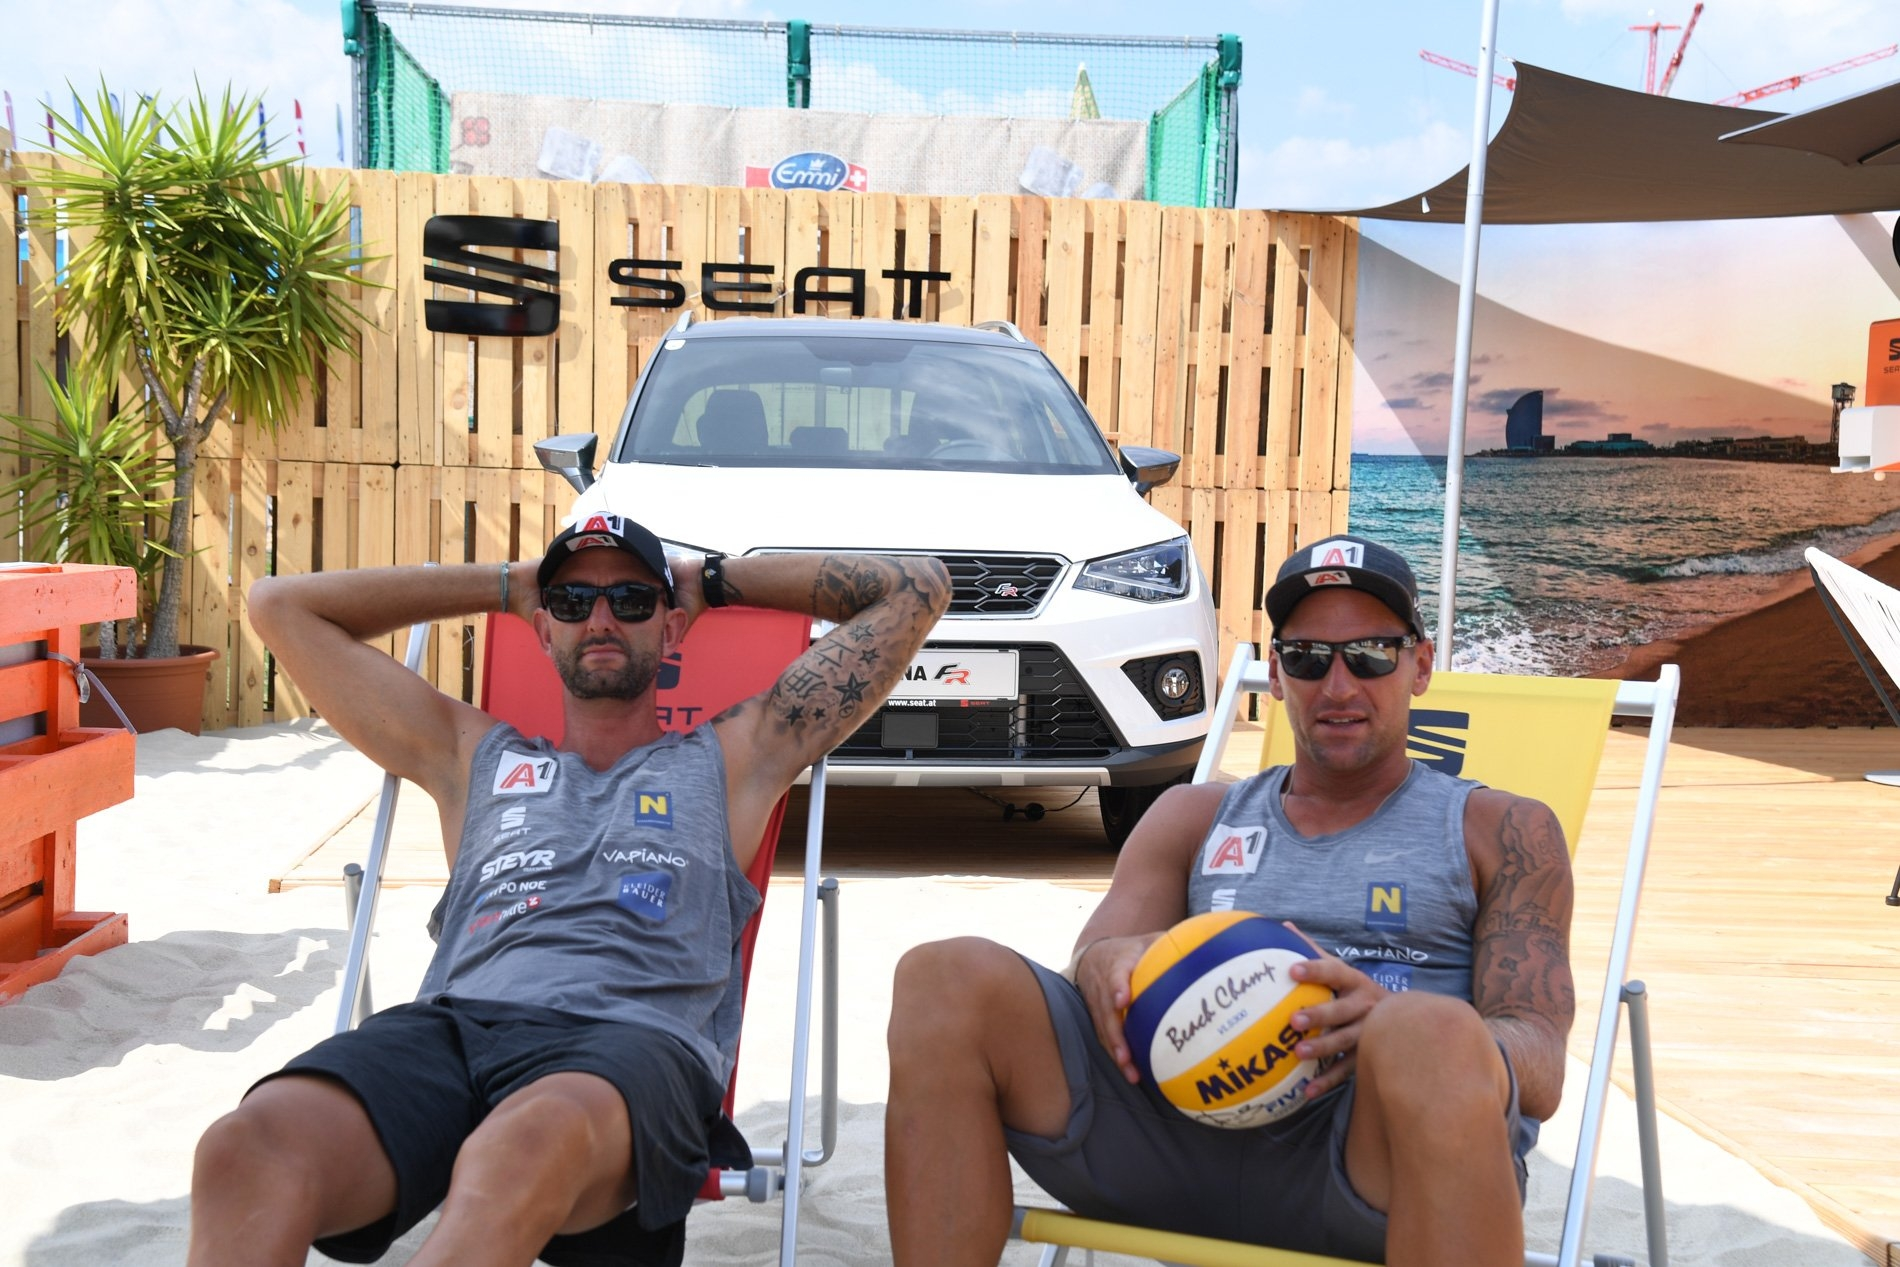 Just two famous Austrian beach volleyball teams lounging about. Photocredit: Bernhard Horst.